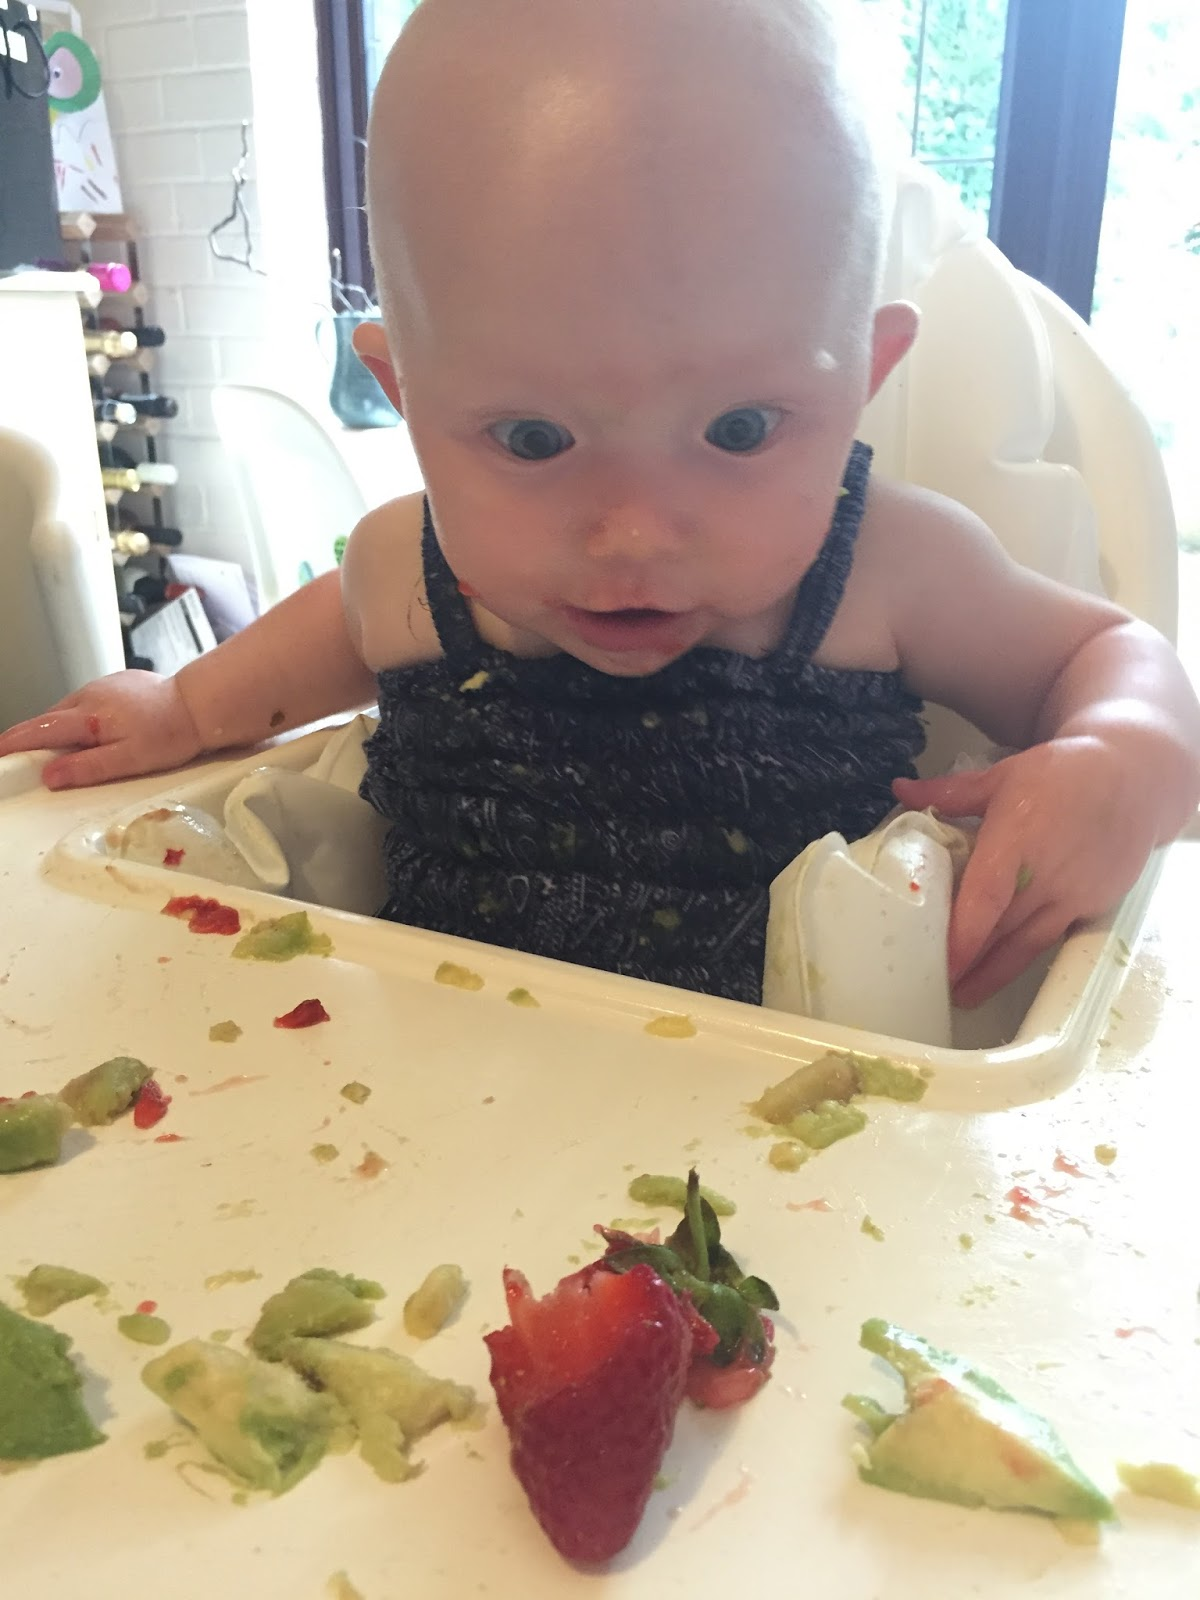 A baby looks in wonder at a partially munched strawberry on her high chair tray